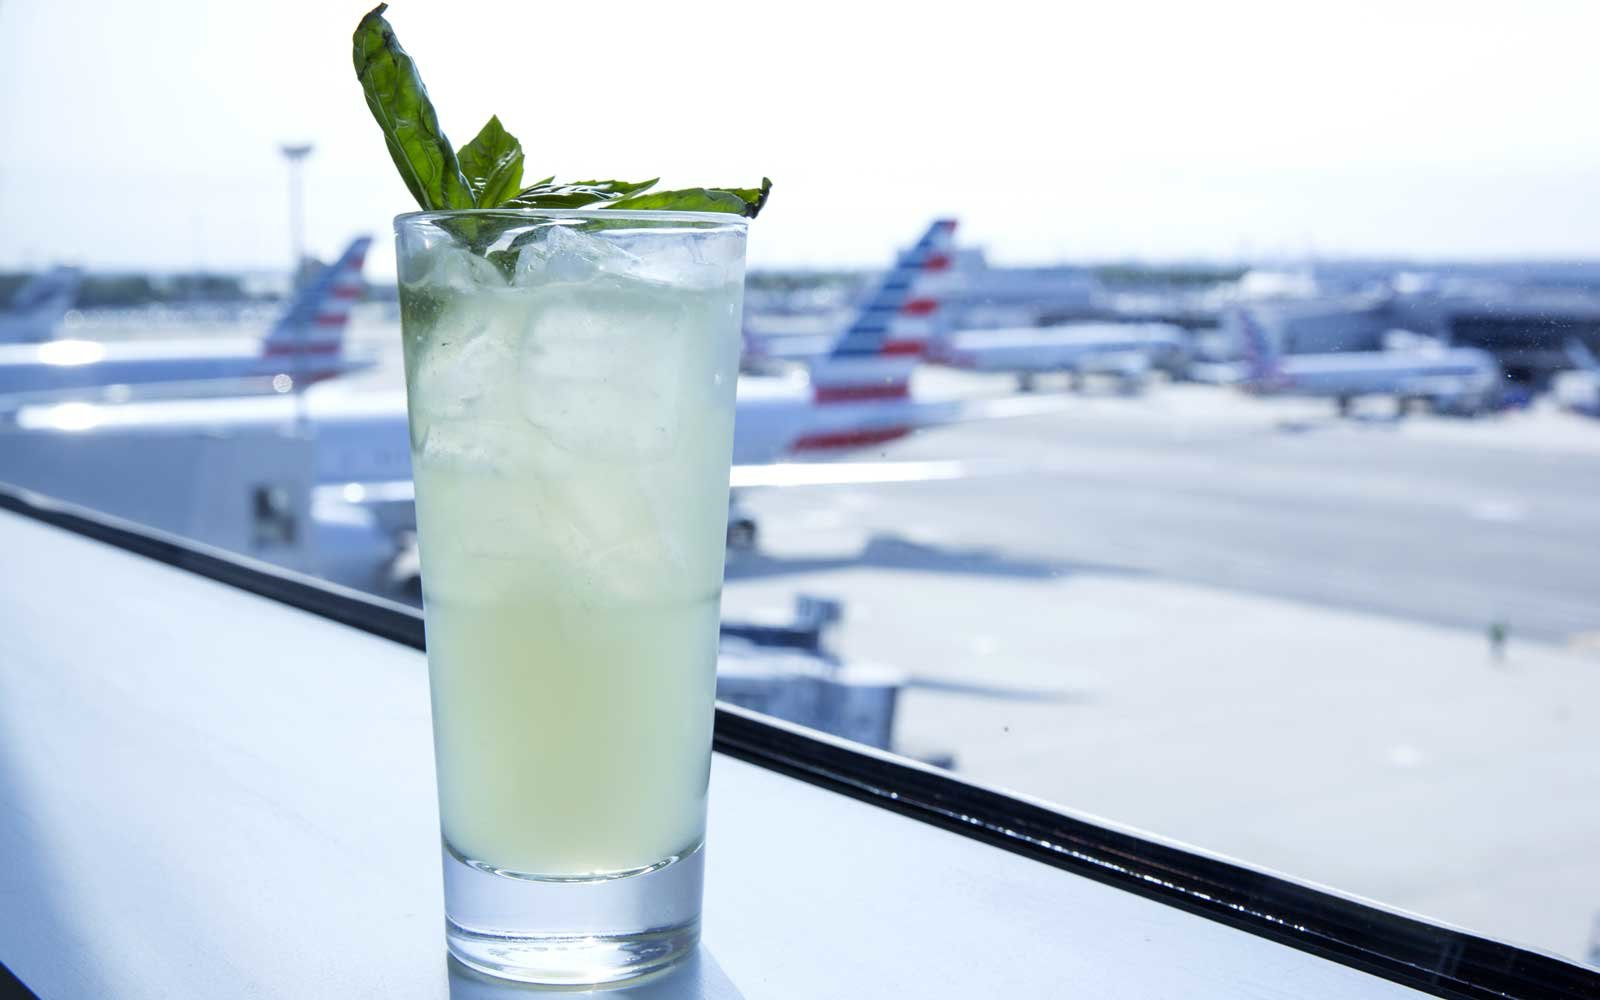 Drink with a view of planes at the airport